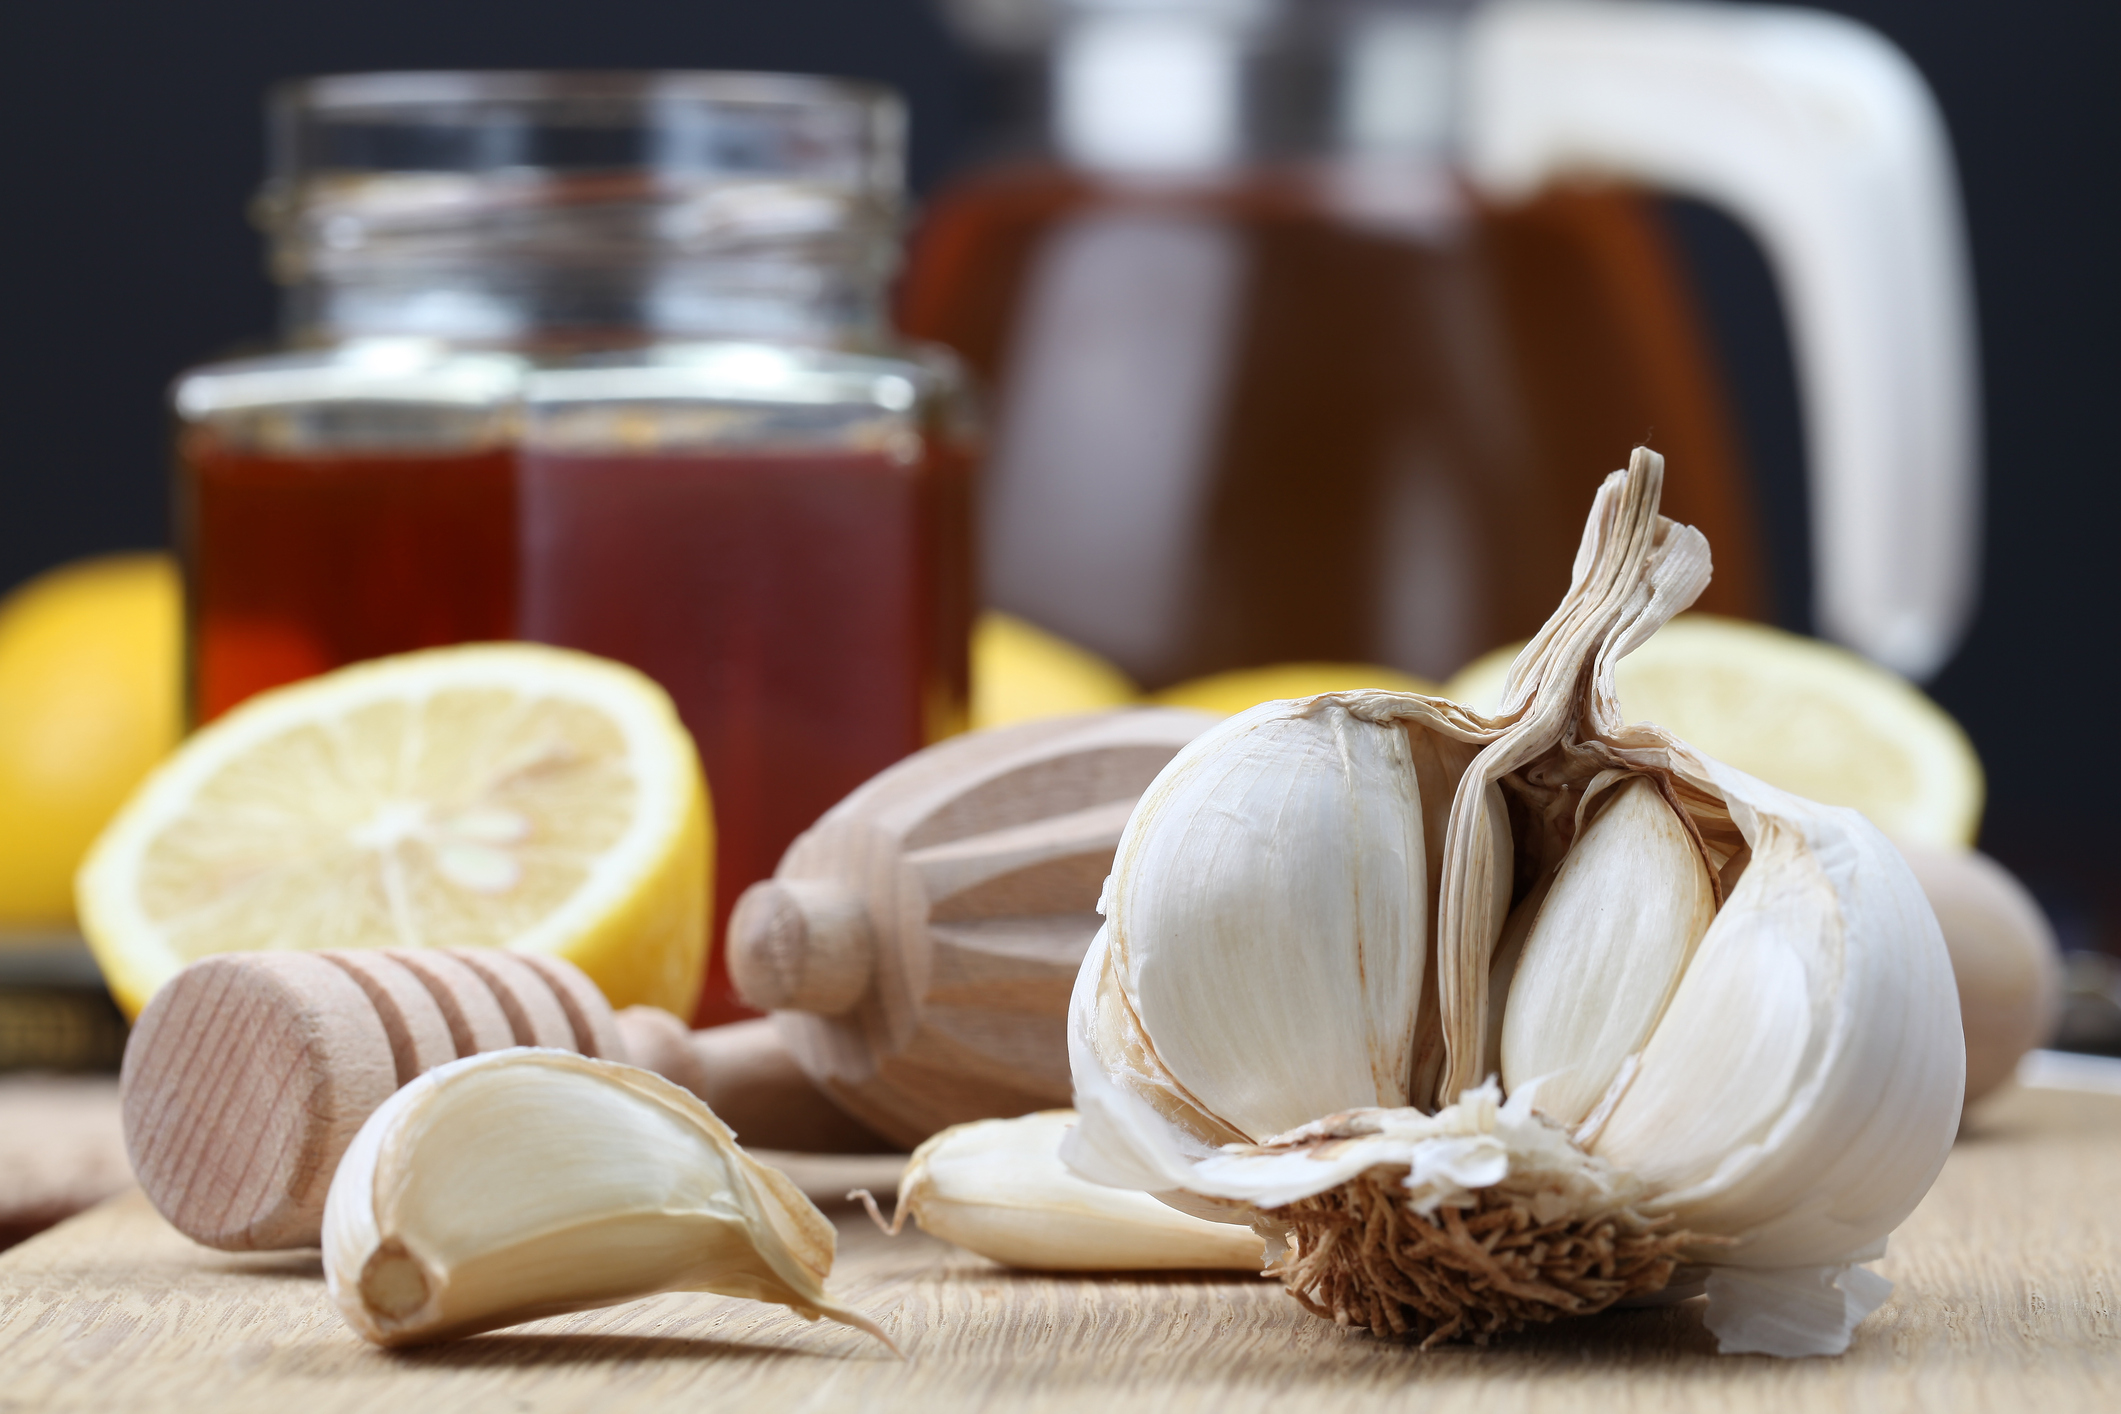 naturopath victoria, naturopathic doctor victoria, naturopathic clinic victoria, naturopathic medicine victoria, victoria naturopath, Dr. Meghan van Drimmelen, immune boost, cold and flu treatment, natural home remedies